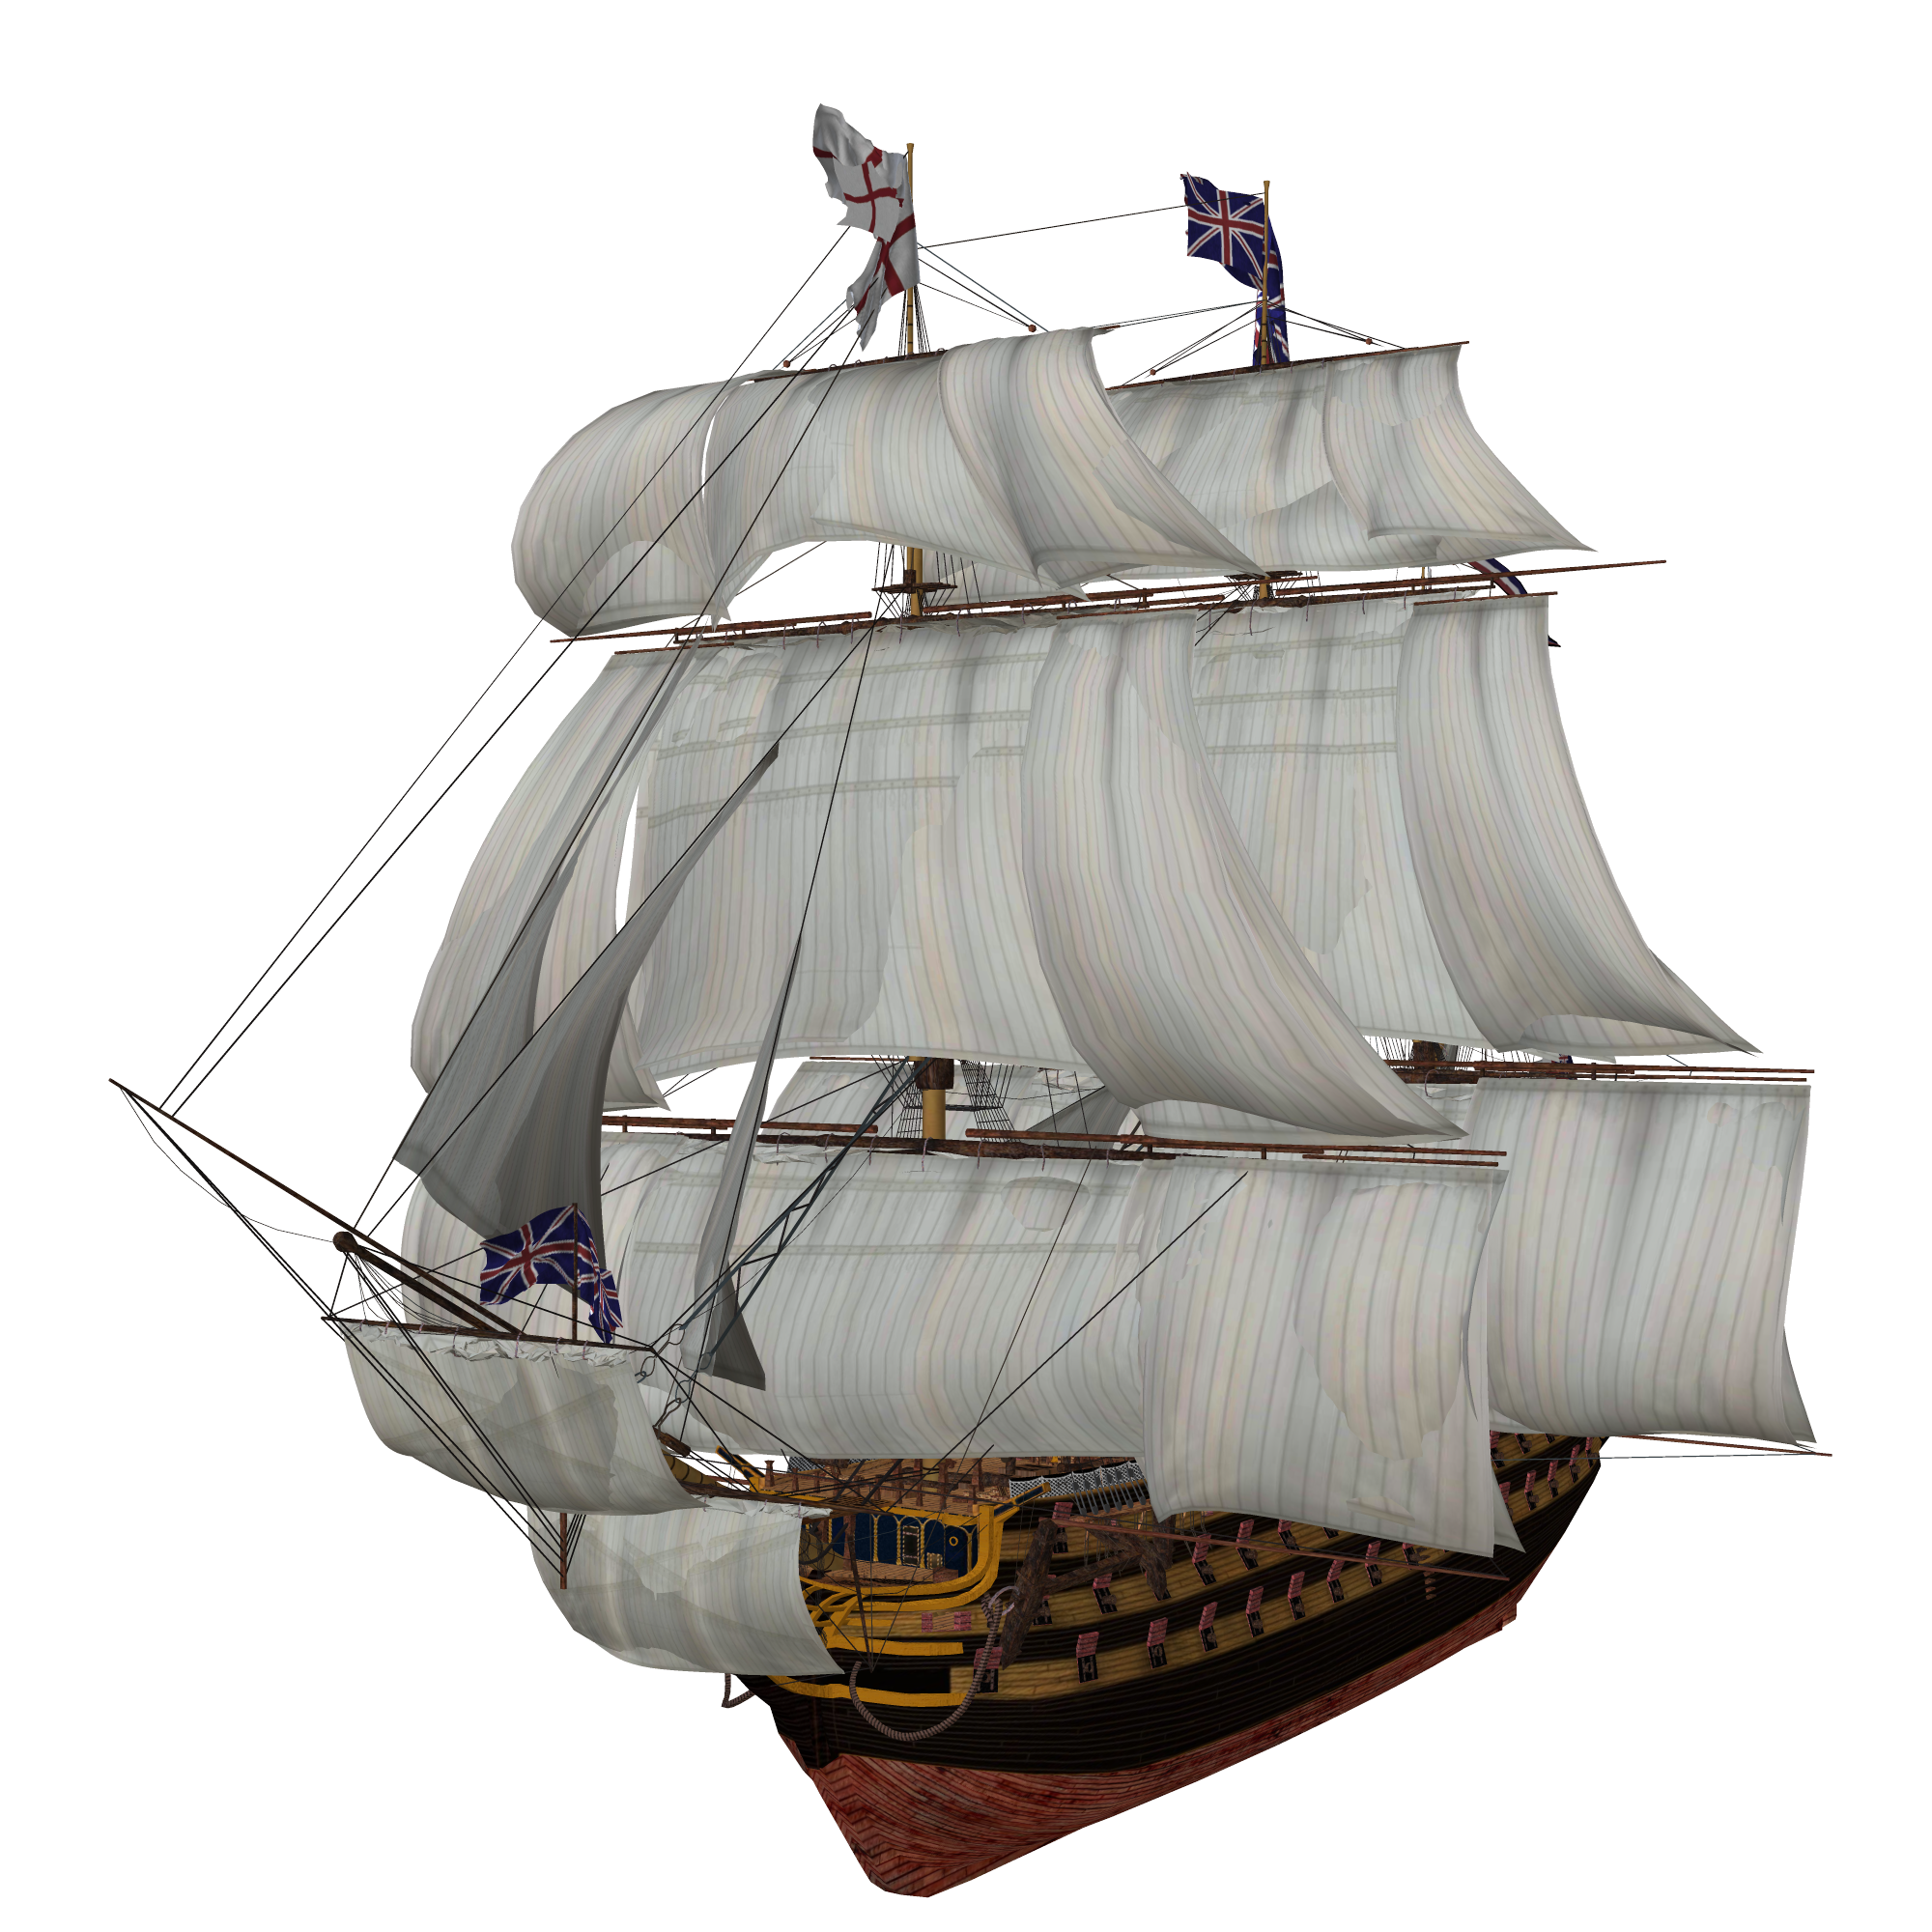 Png Transparent Background Sailing